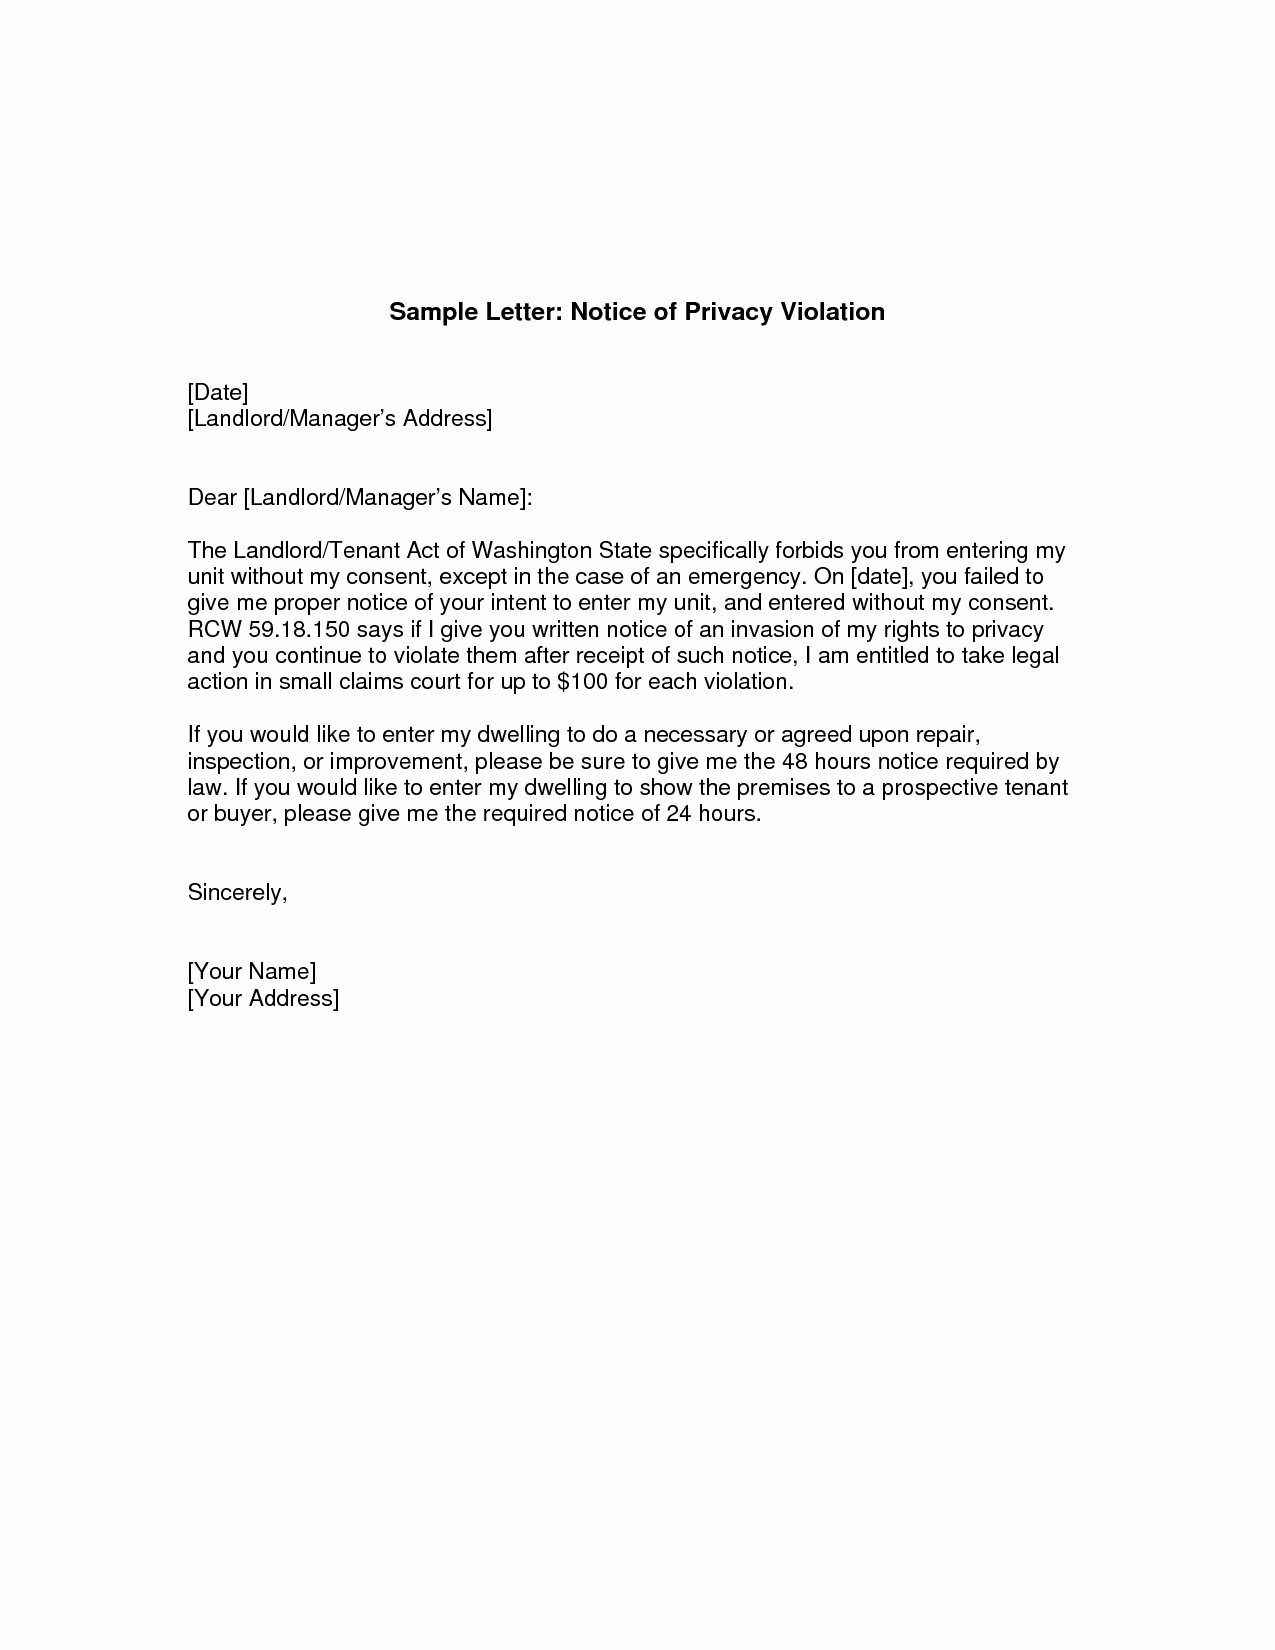 Sample Complaint Letters to Landlord Unique Giving Notice to Landlord Letter Tenant Notice to End Tenancy 2019 02 19